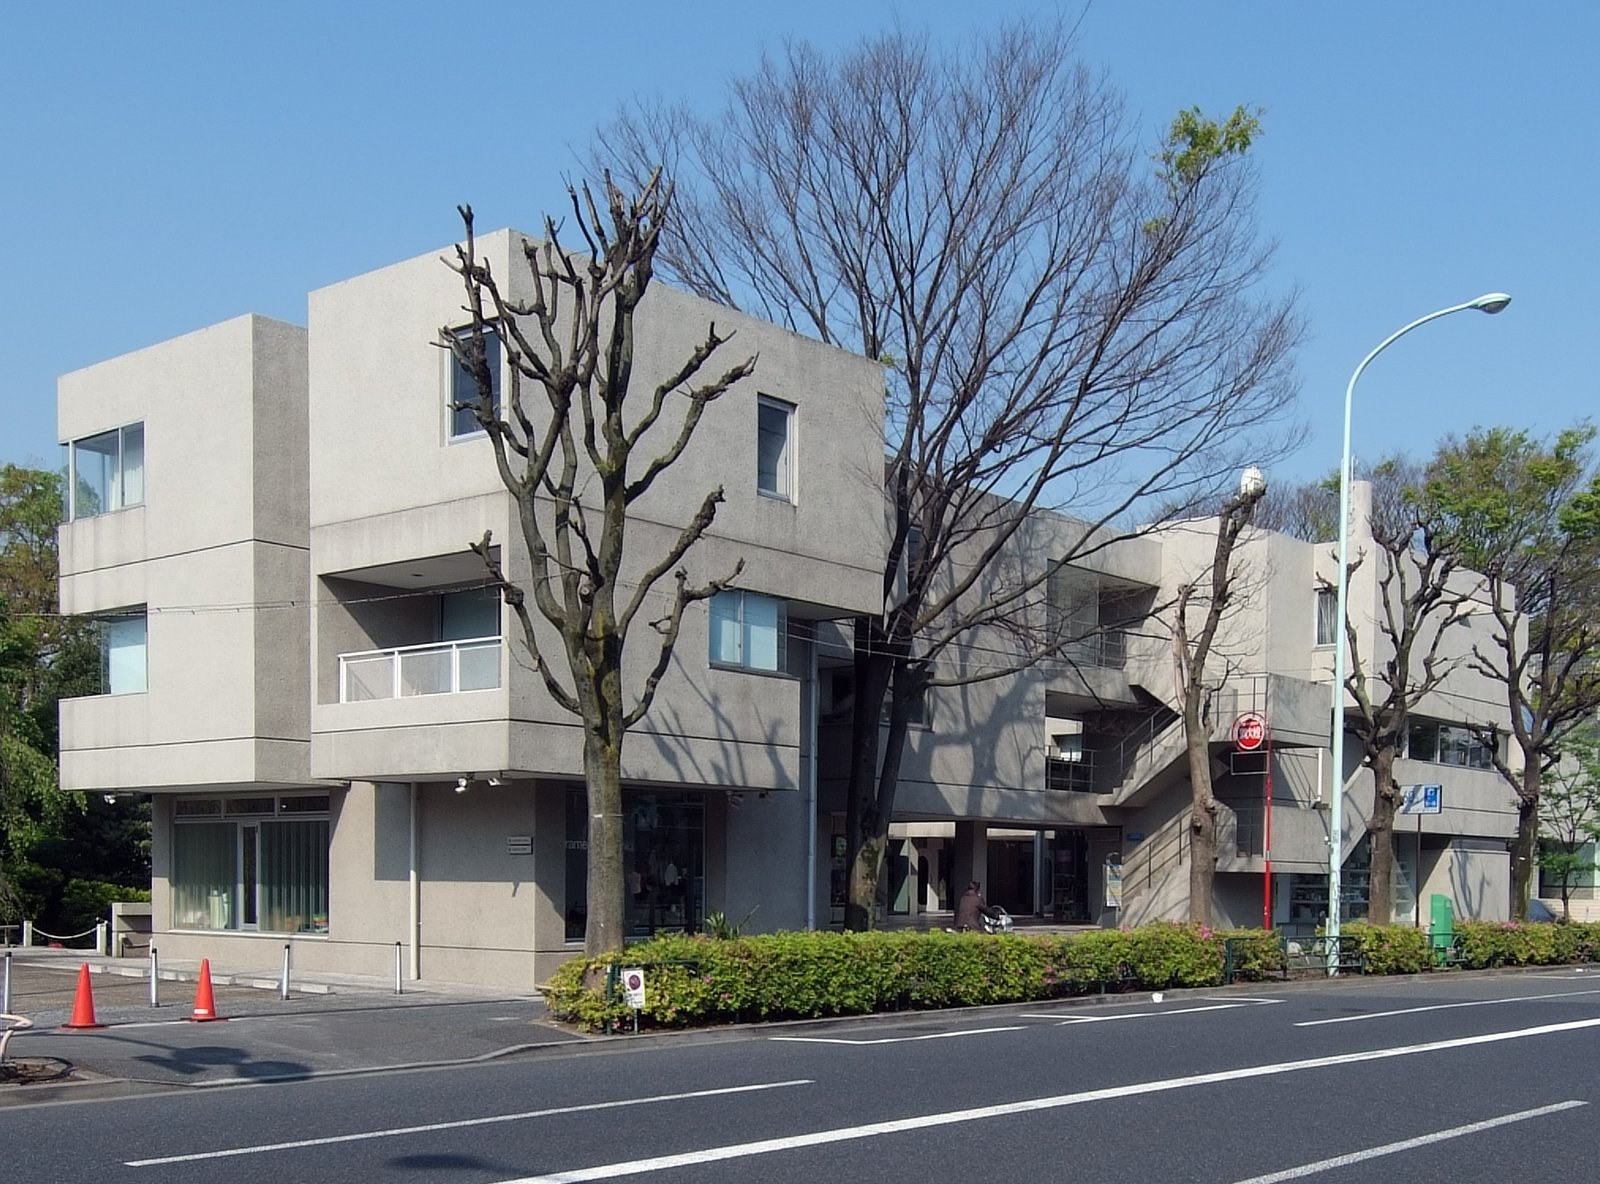 Hillside Terrace in Tokyo  Photo 8 of 12 in Slow Architecture